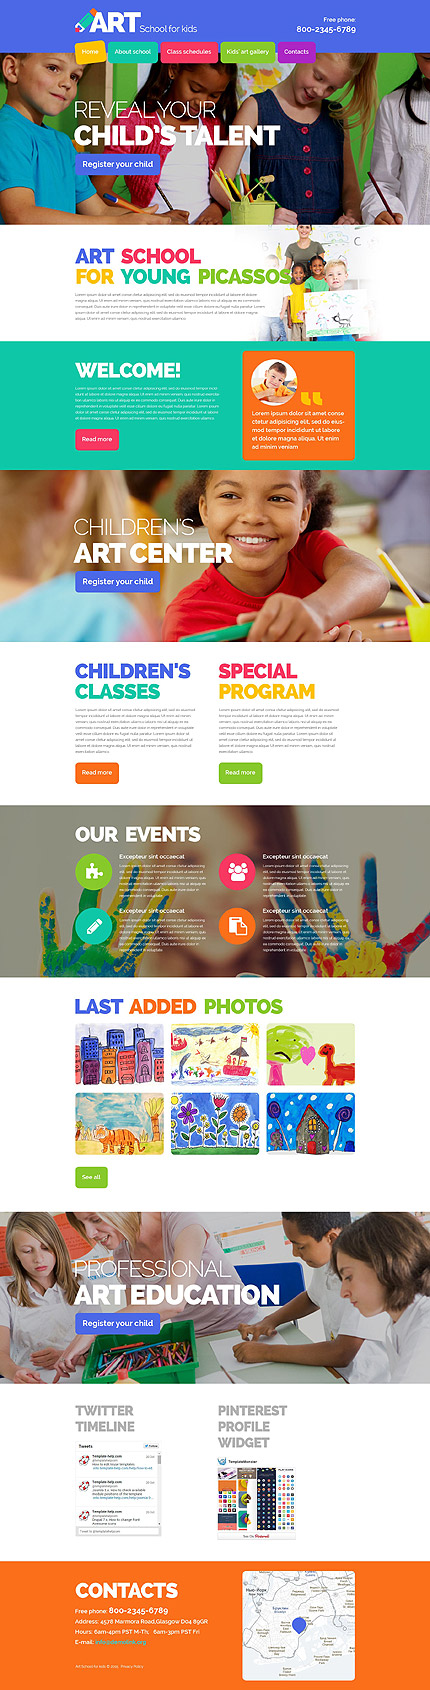 Template 54875 - Art School Responsive Website Template with Parallax and Animation